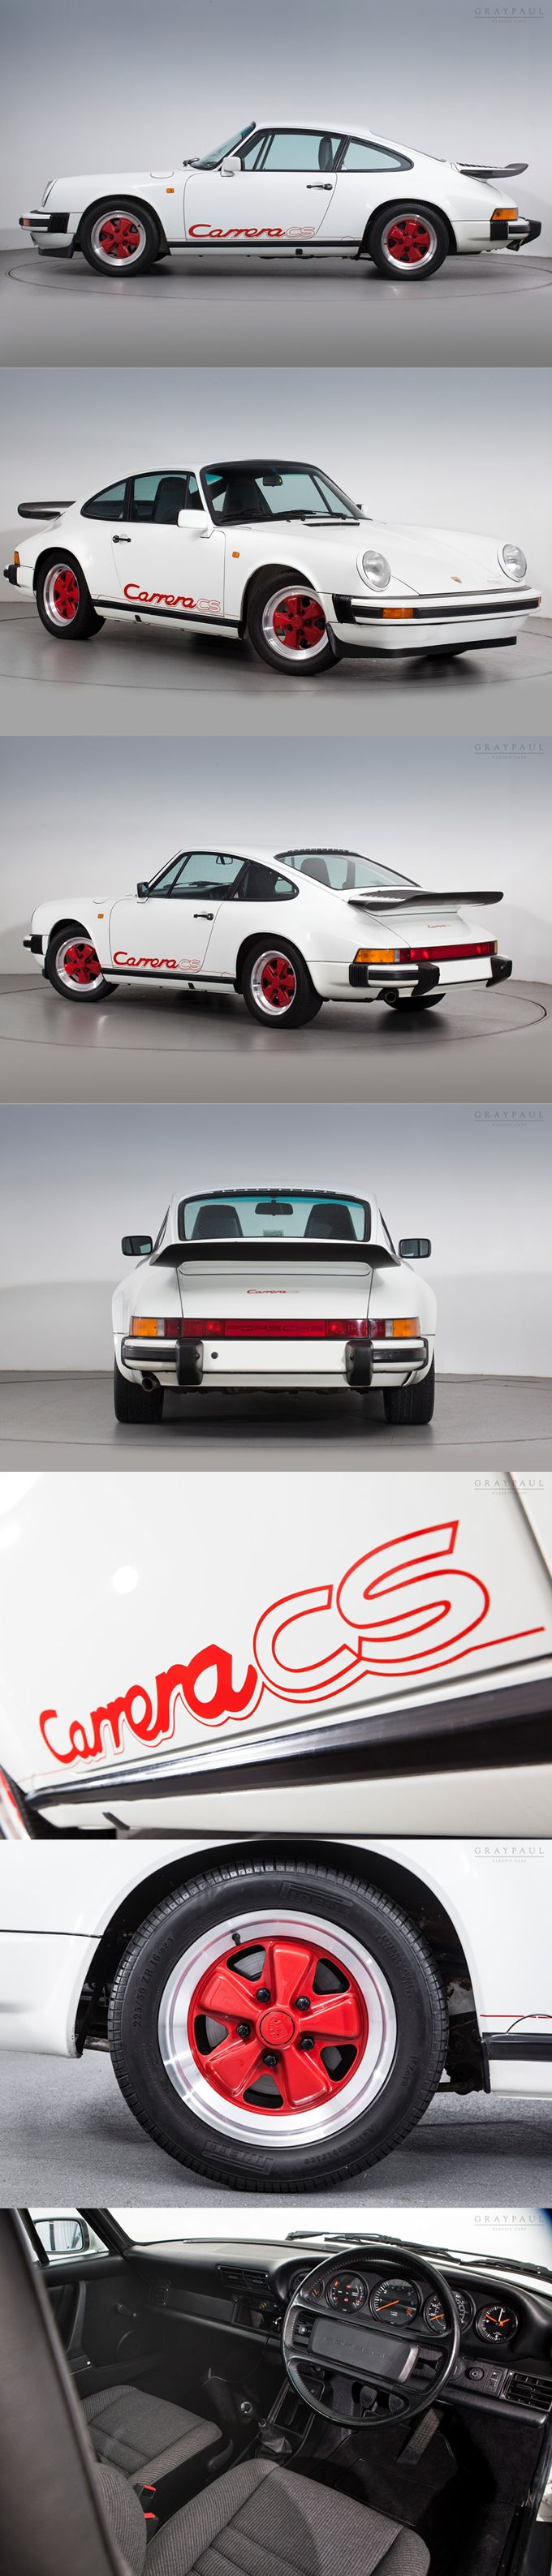 1987 Porsche 911 Carrera CS / Germany / Club Sport / red white / 340 manufactured